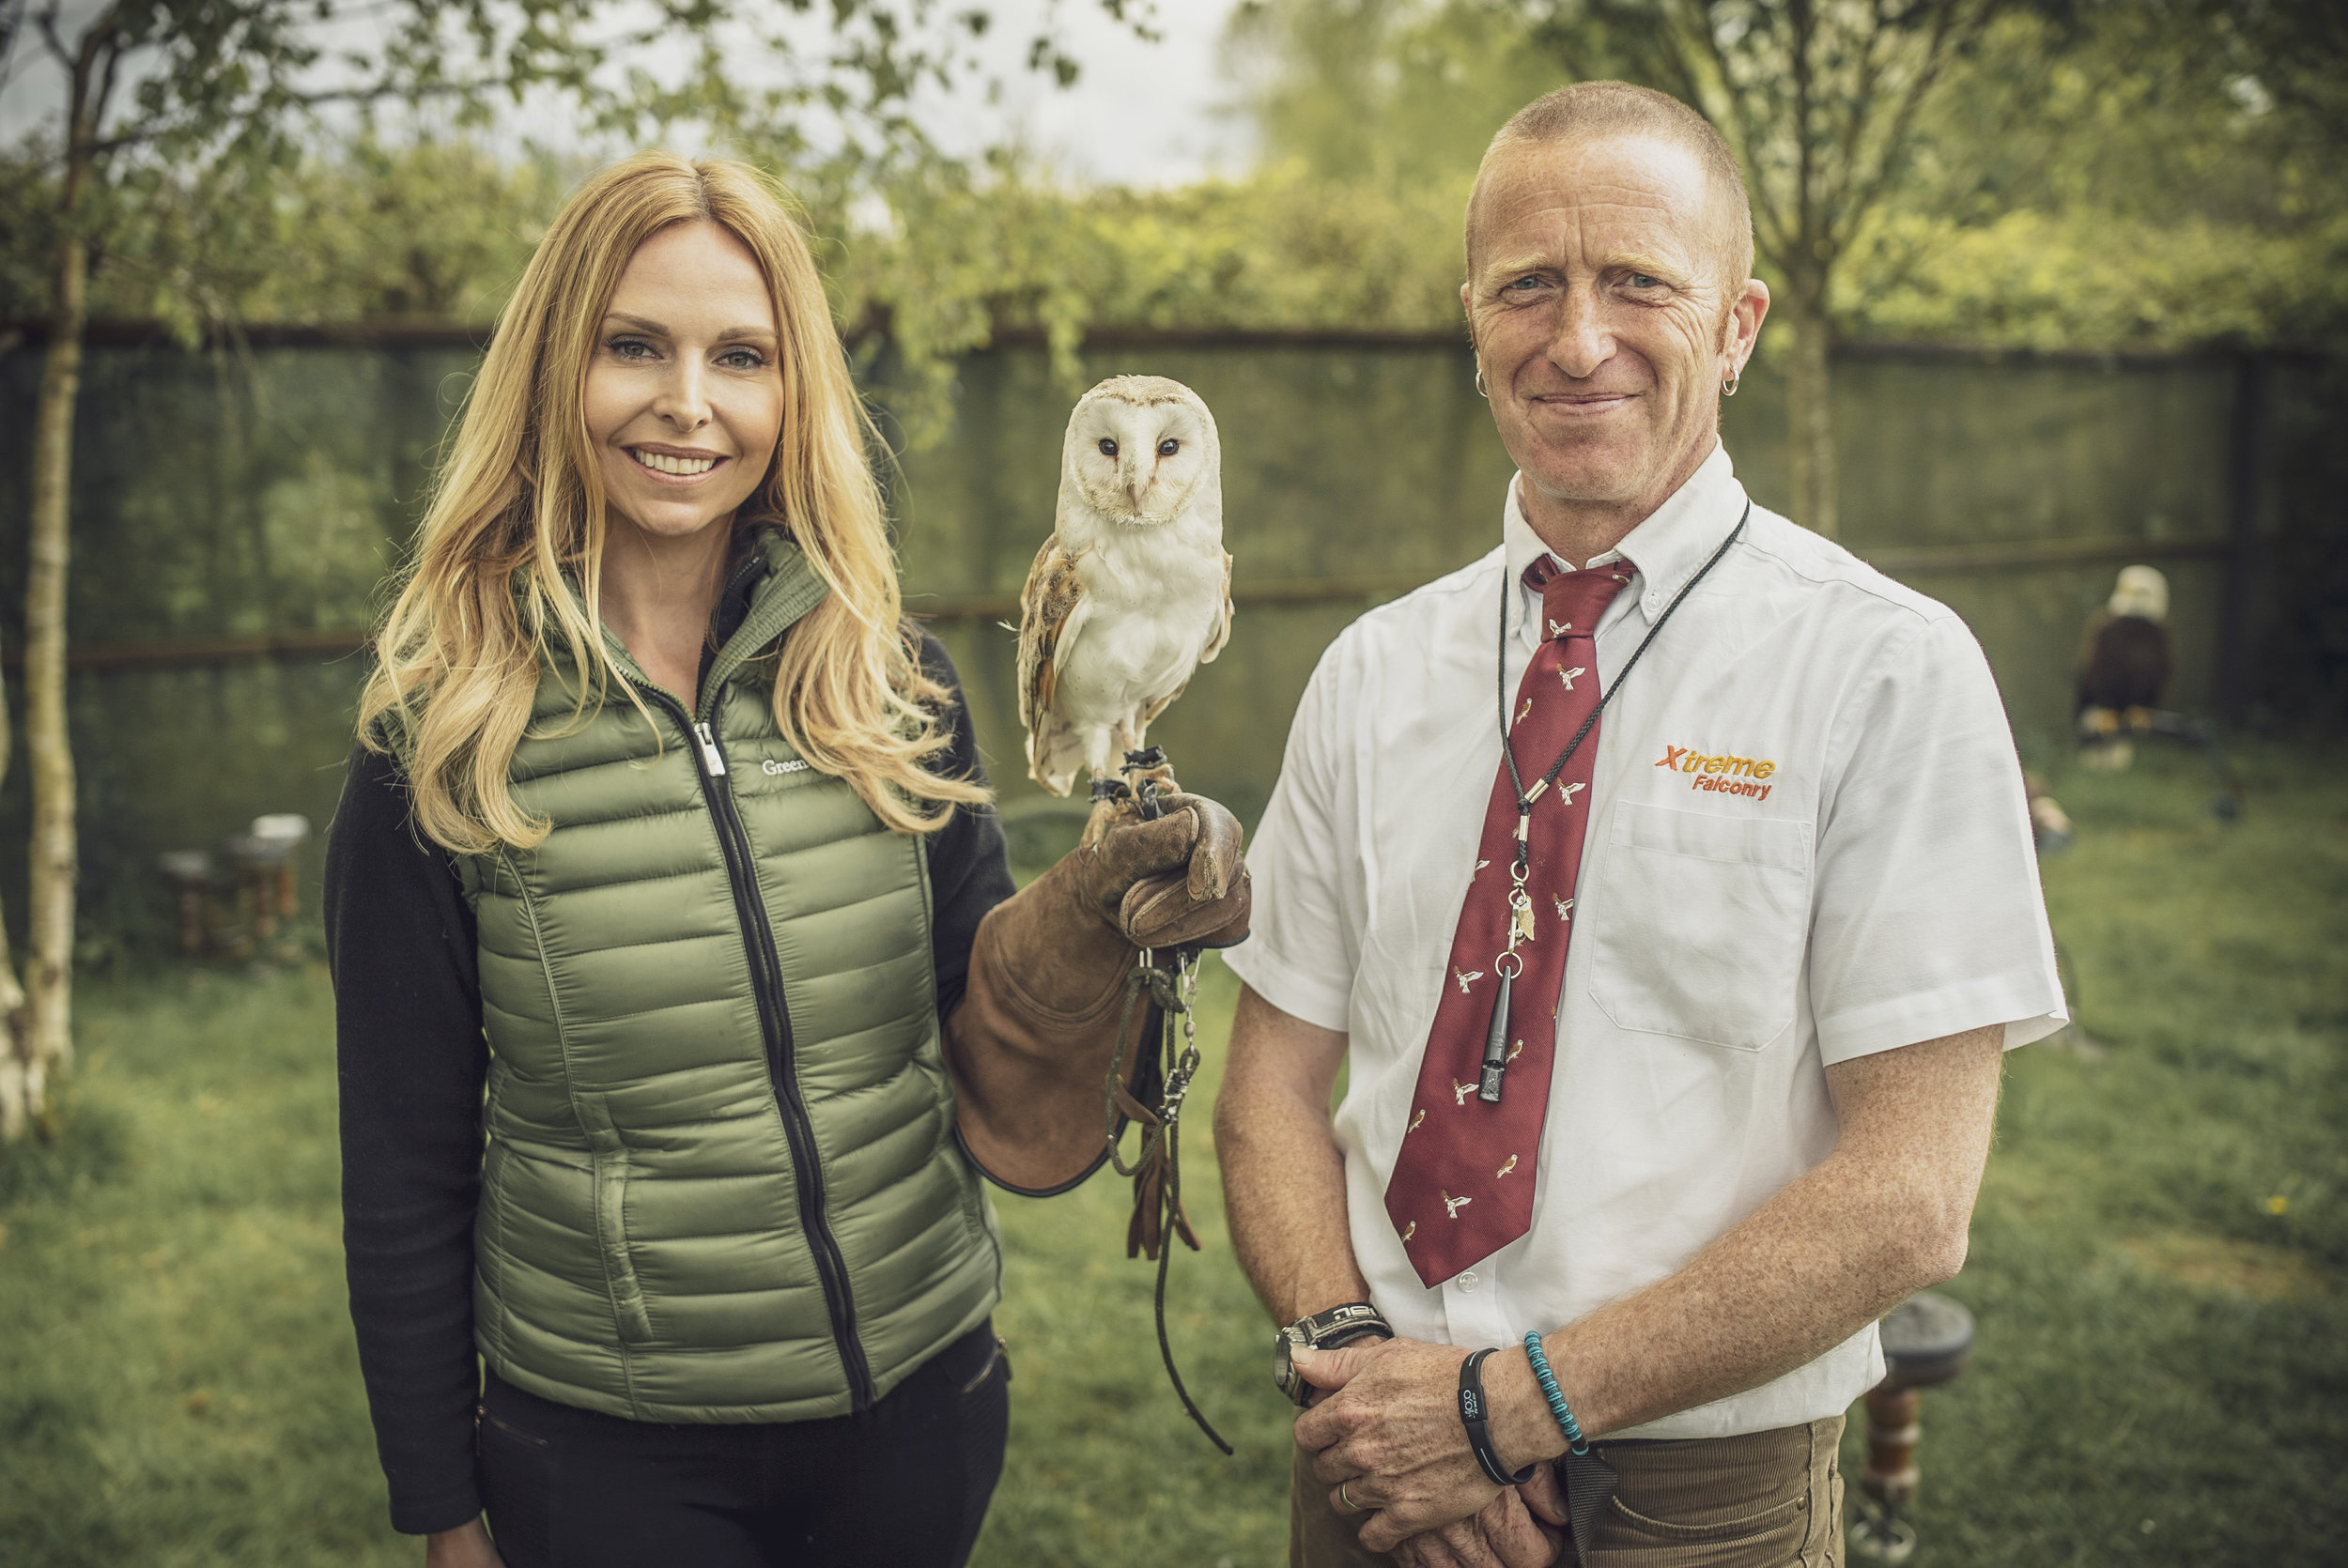 BABY OWL AND PRESENTER2.jpg